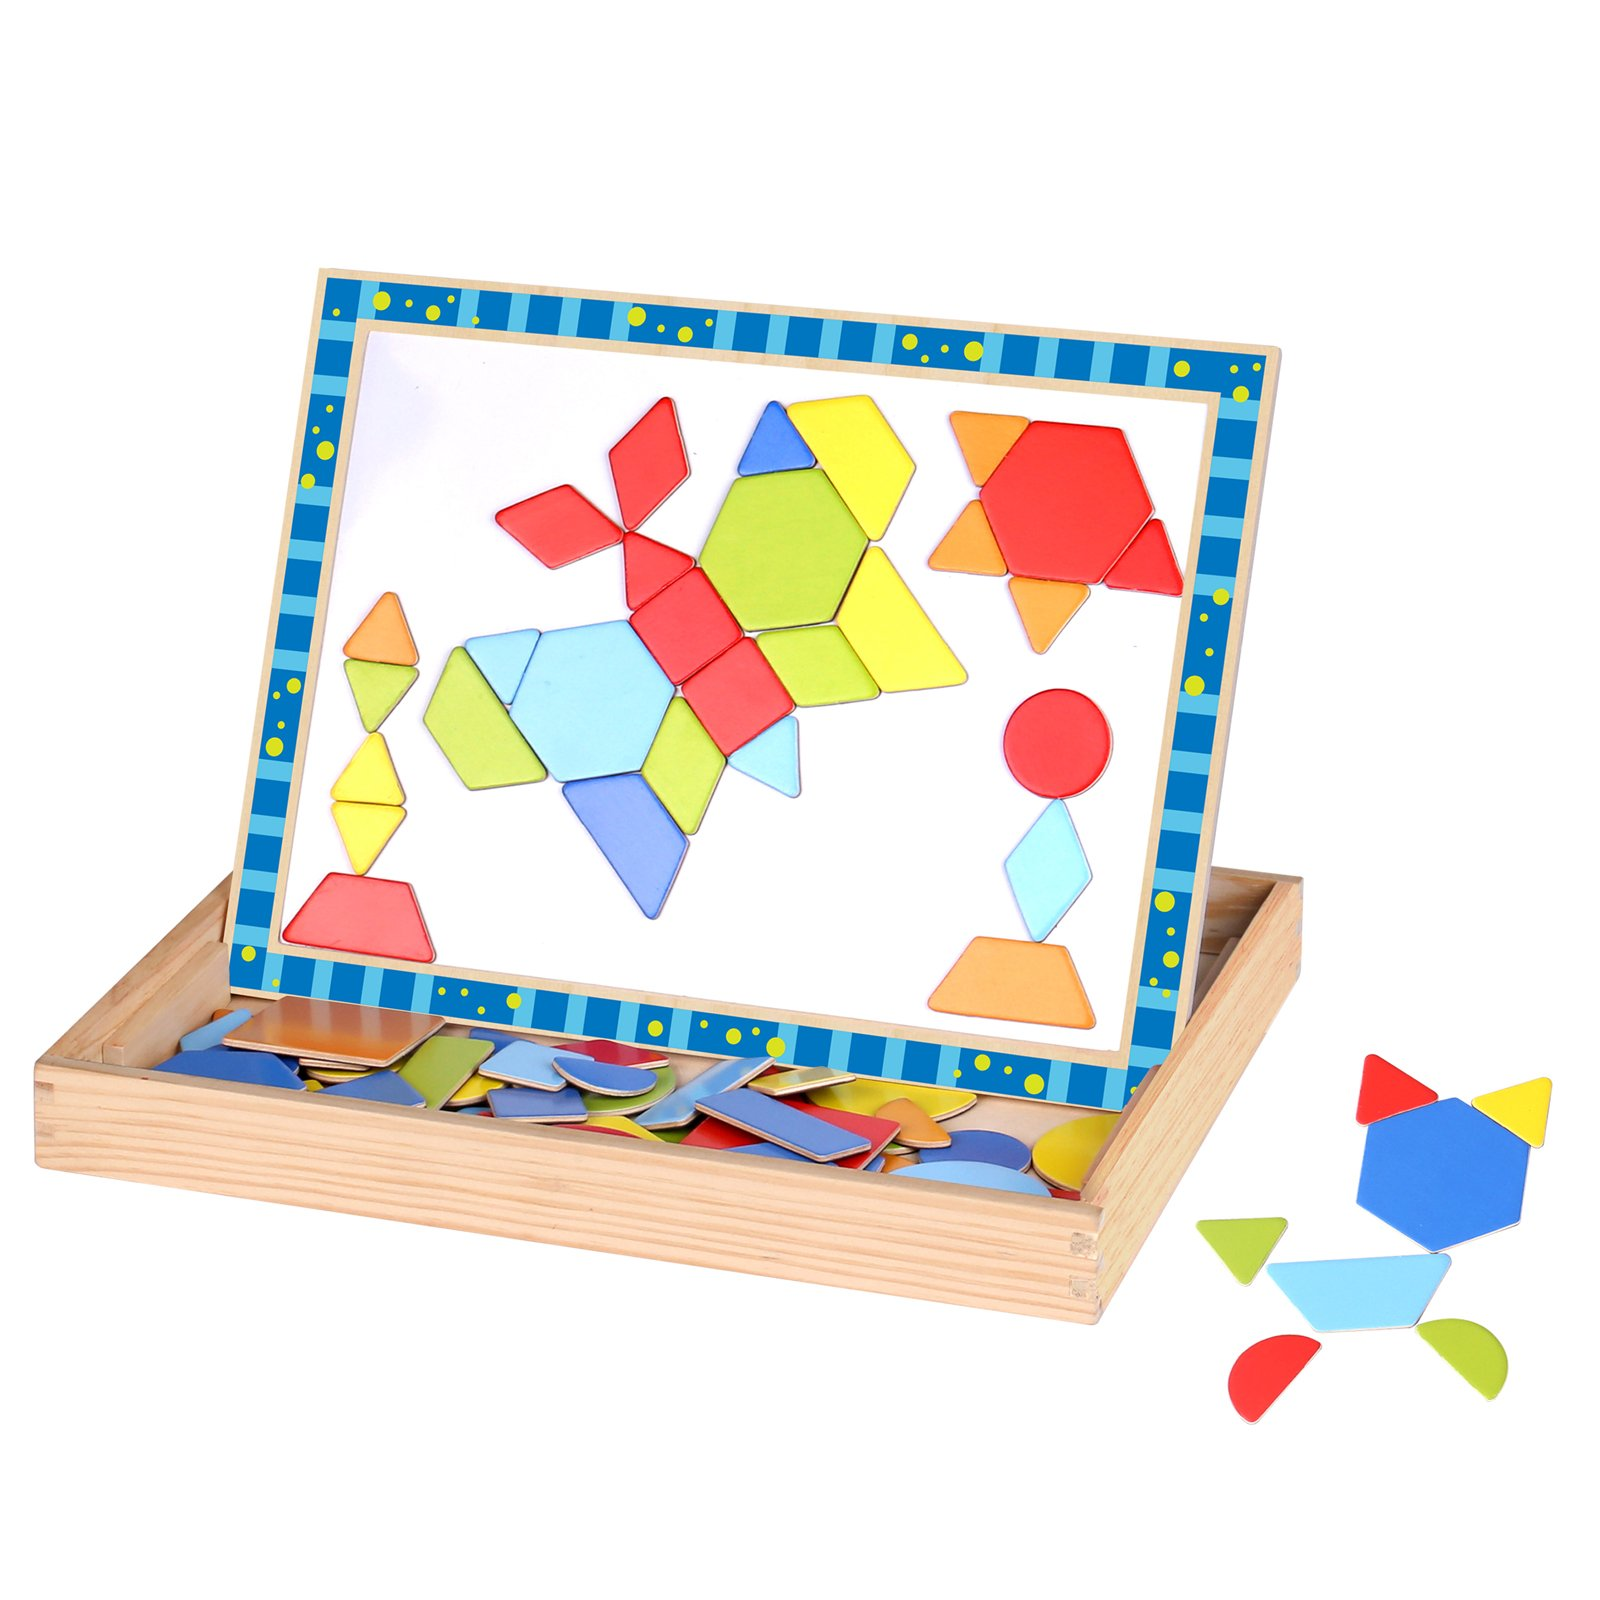 Timy Shape Puzzle Double Side Wooden Magnetic Pattern Blocks Art Easel with Chalkboard and Chalk Educational Toy for Kids